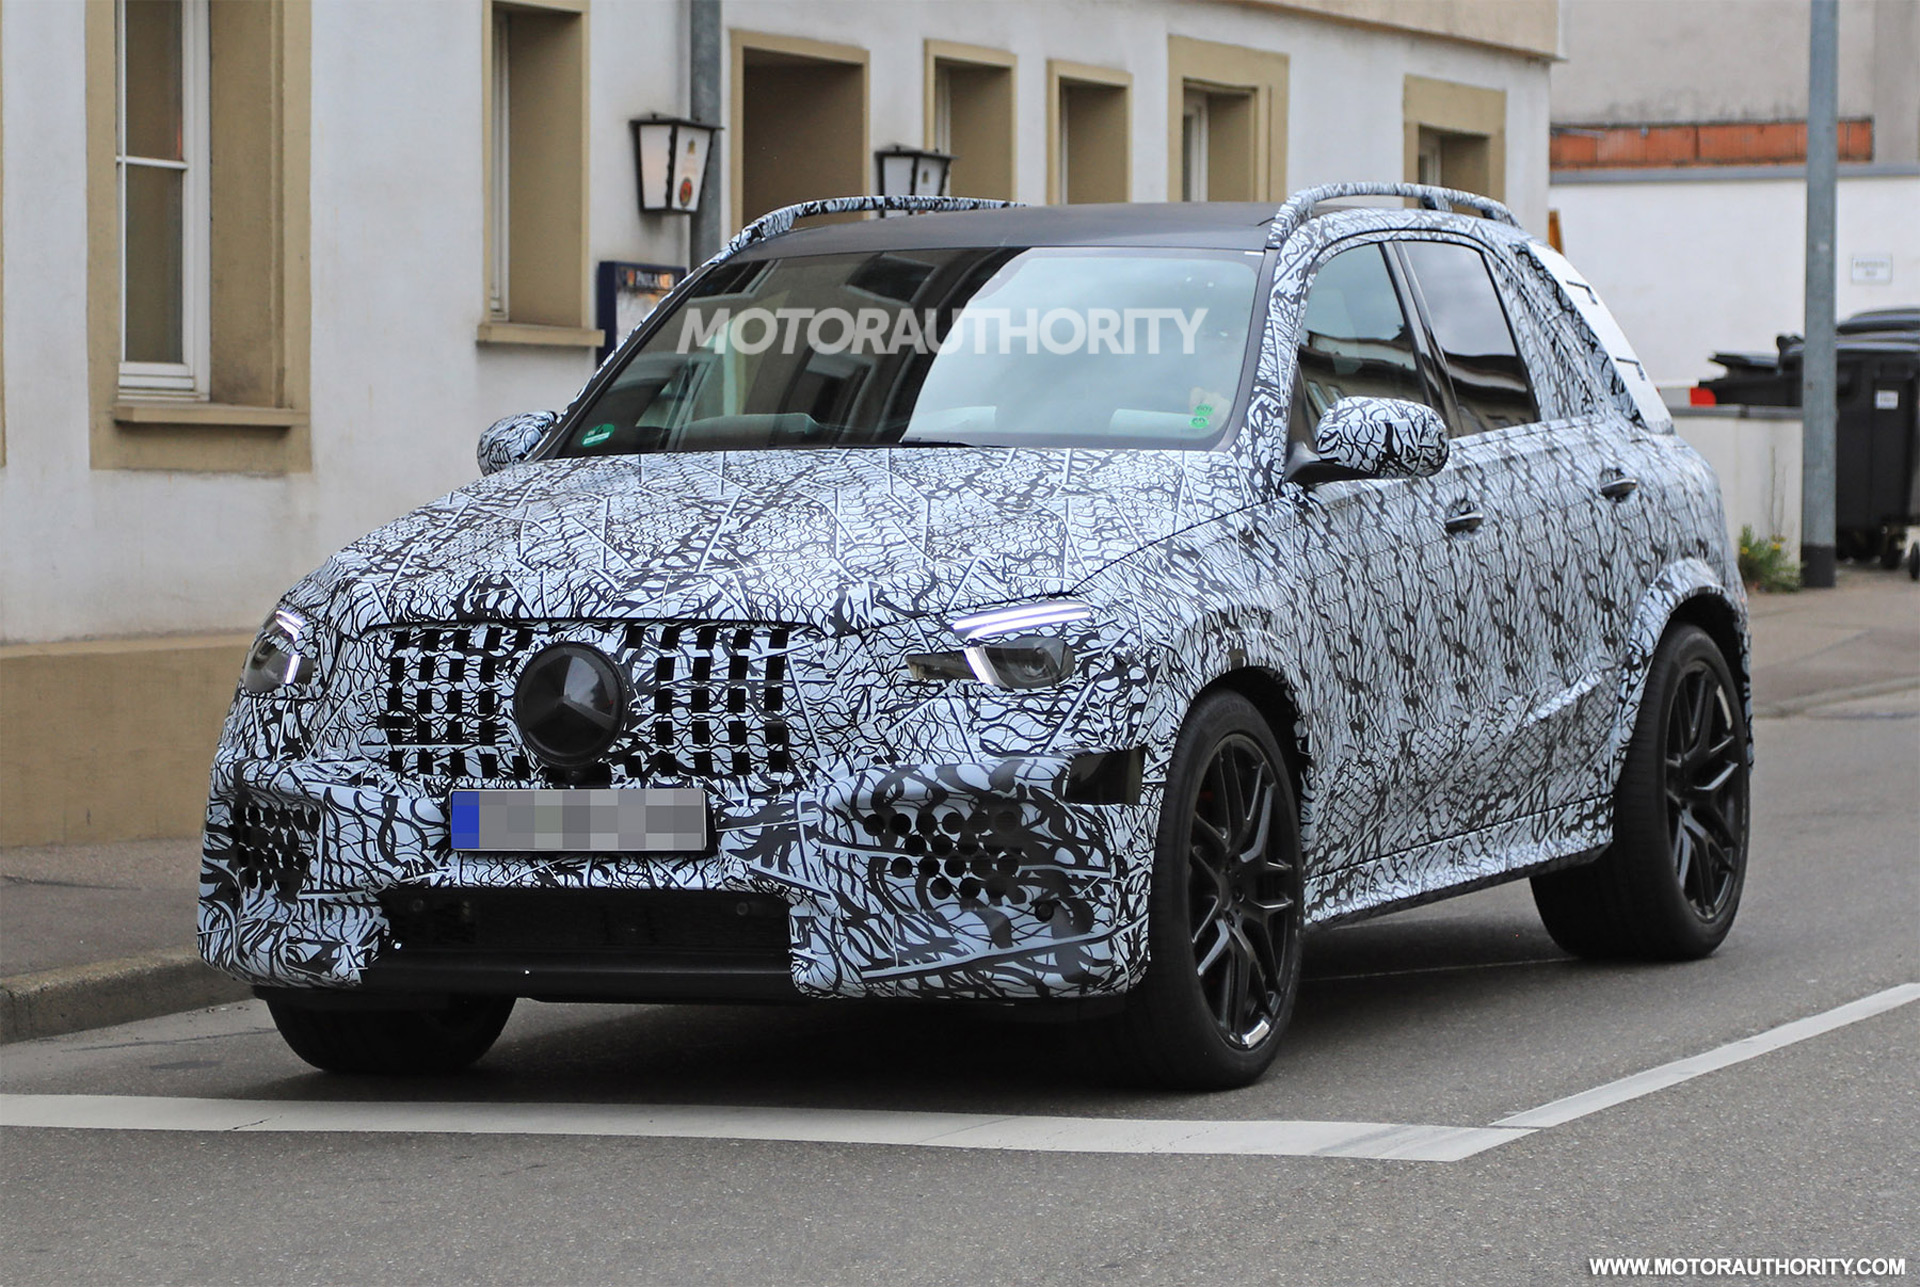 Sonax Amg Mercedes Clrp Lmp1: 2020 Mercedes-AMG GLE63 Spy Shots And Video